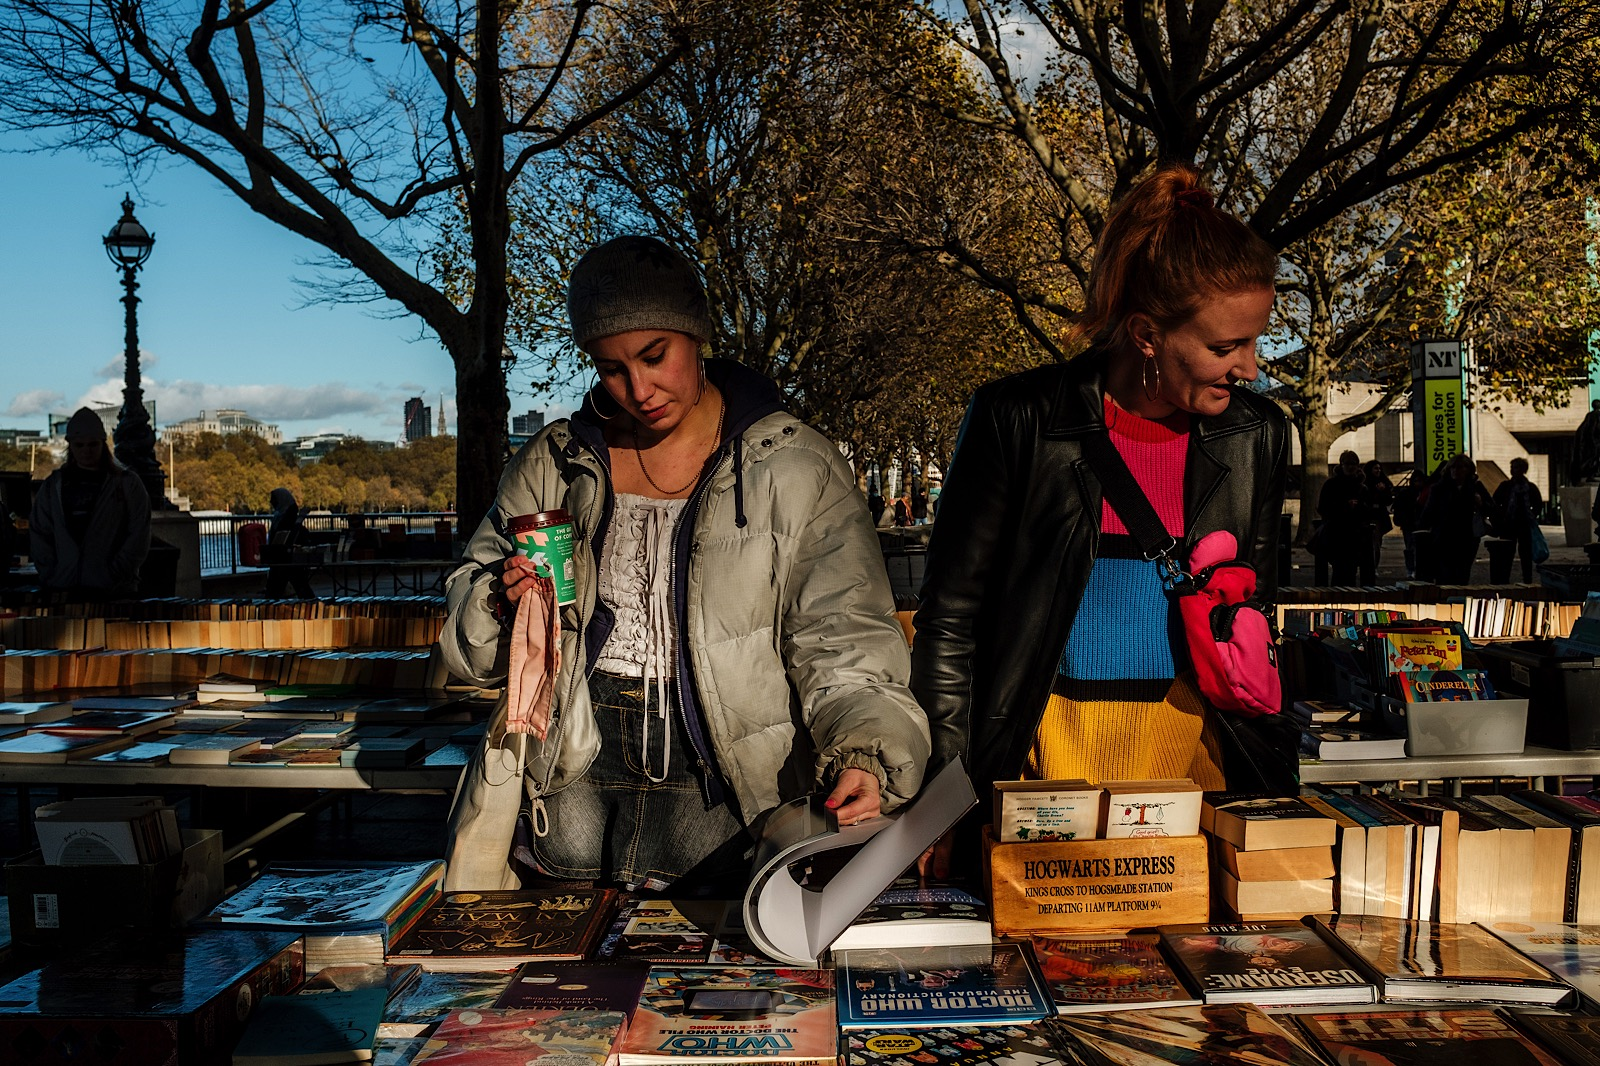 2 women browsing book stalls in market on Banks of River Thames, London